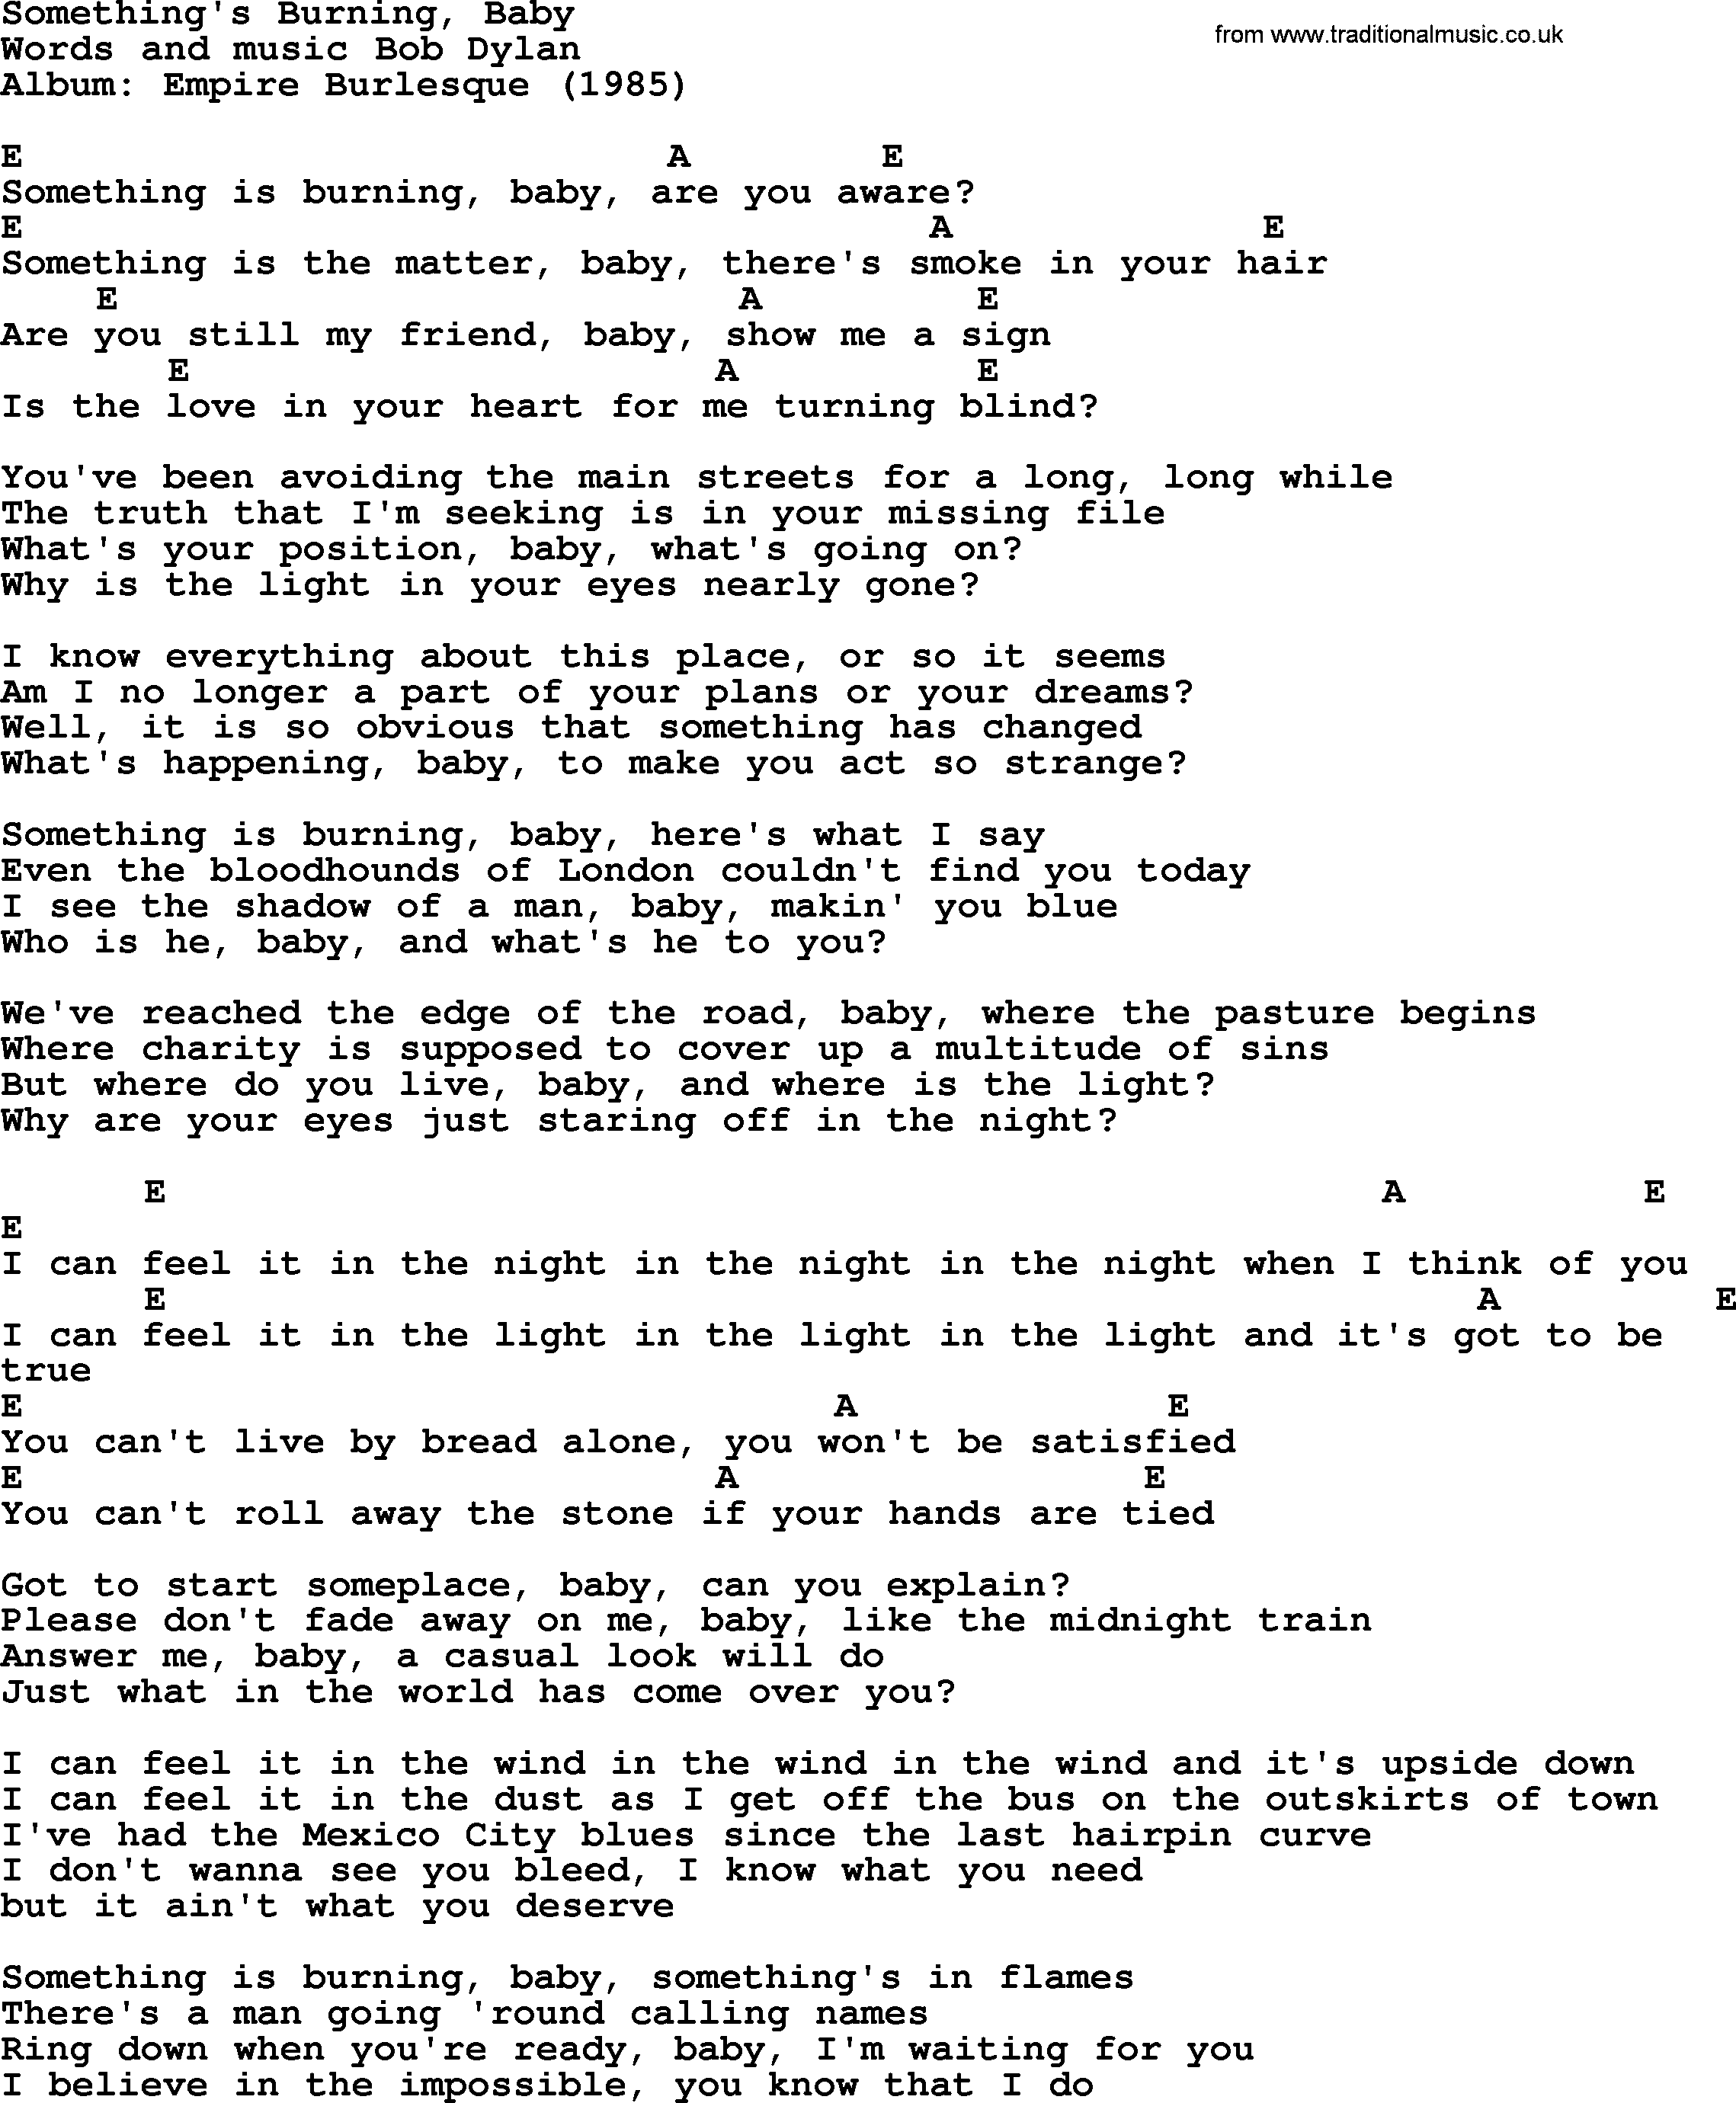 Bob dylan song somethings burning baby lyrics and chords bob dylan song lyrics with chords somethings burning baby hexwebz Image collections